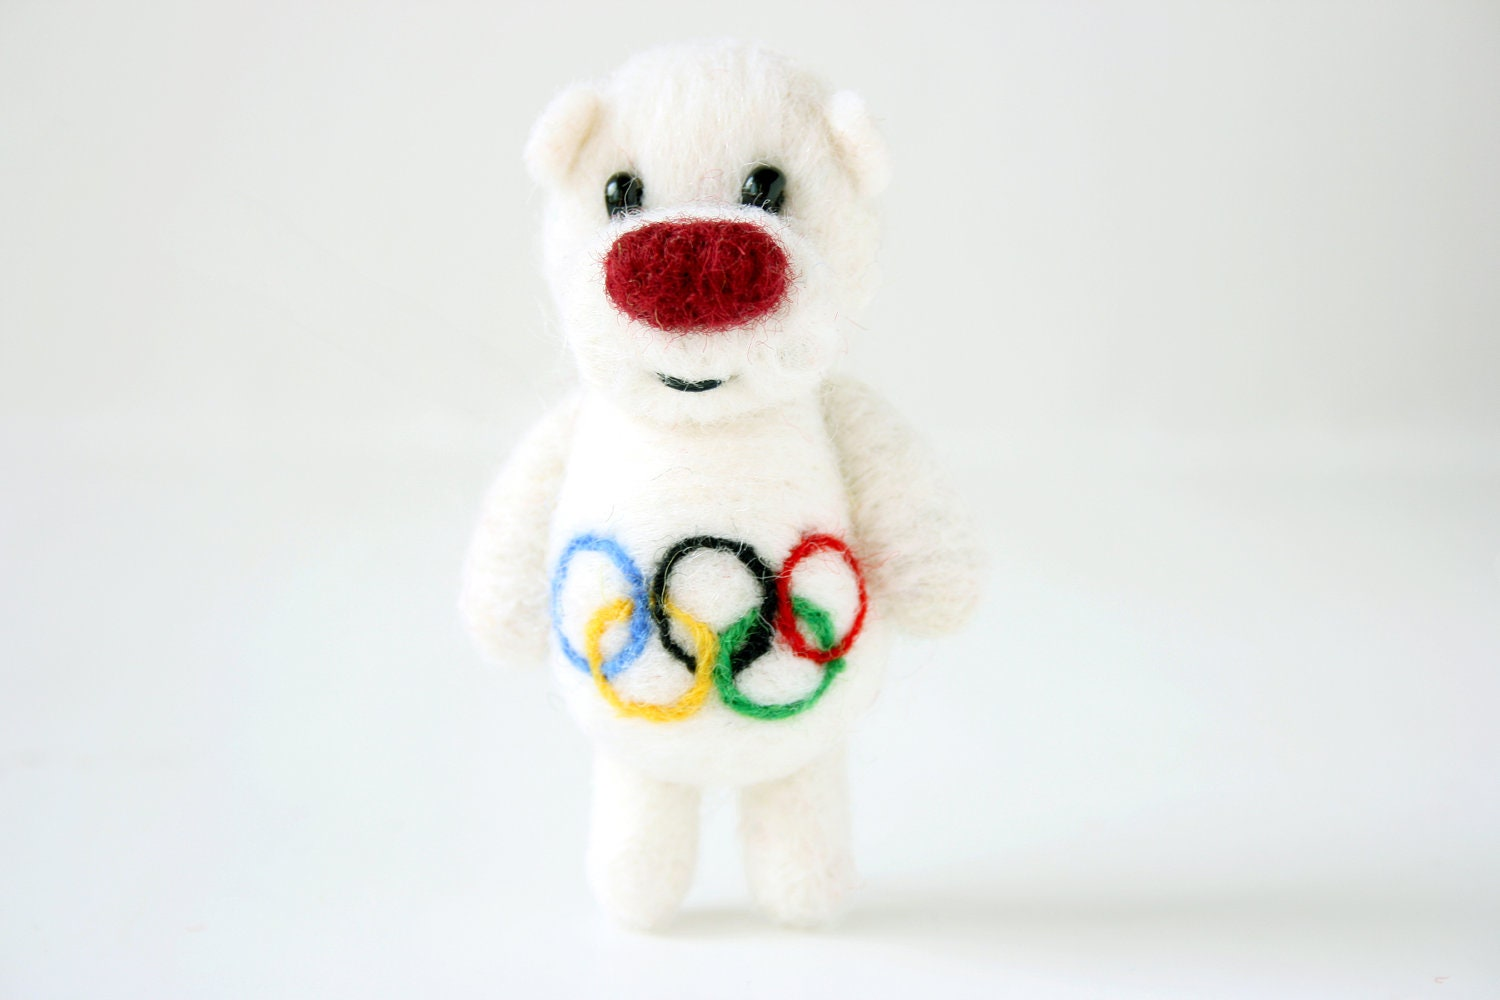 London Olympic games mascot bear